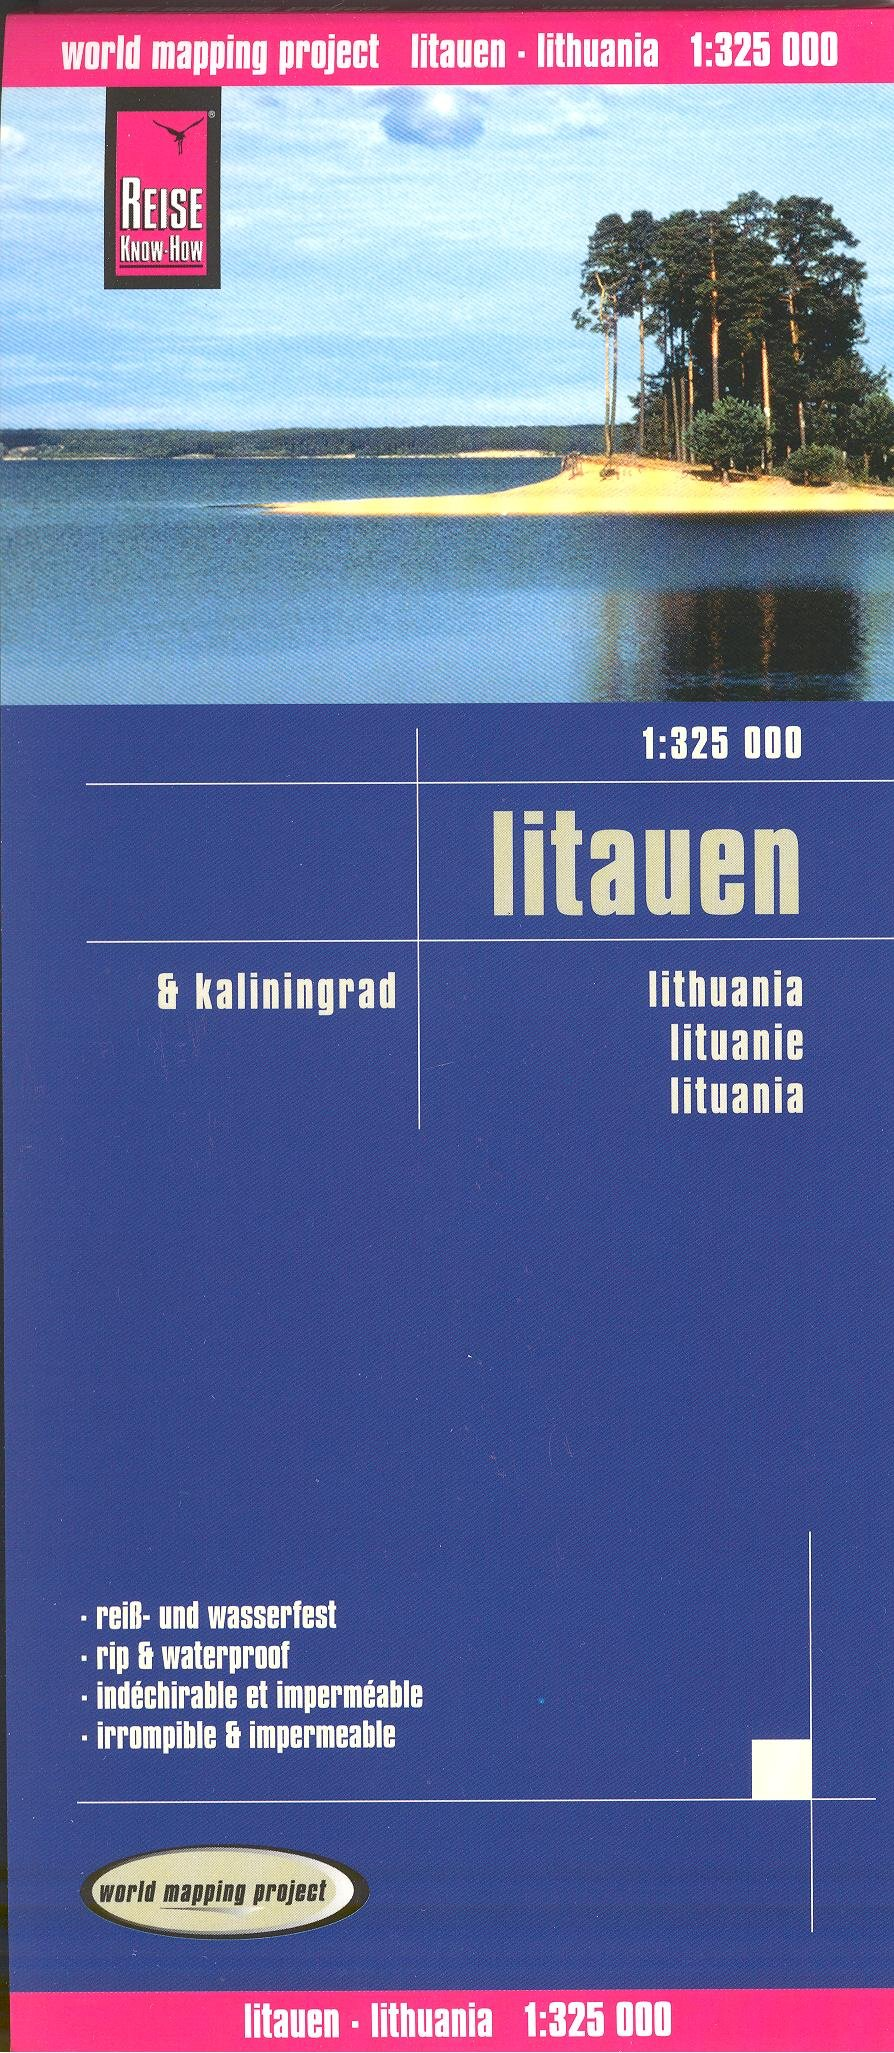 Lithuania & Kaliningrad (Russia) 1:325,000 Travel Map, waterproof, GPS-compatible REISE Map – Folded Map, 2010 Plan B005IW2OX6 Travel - Europe